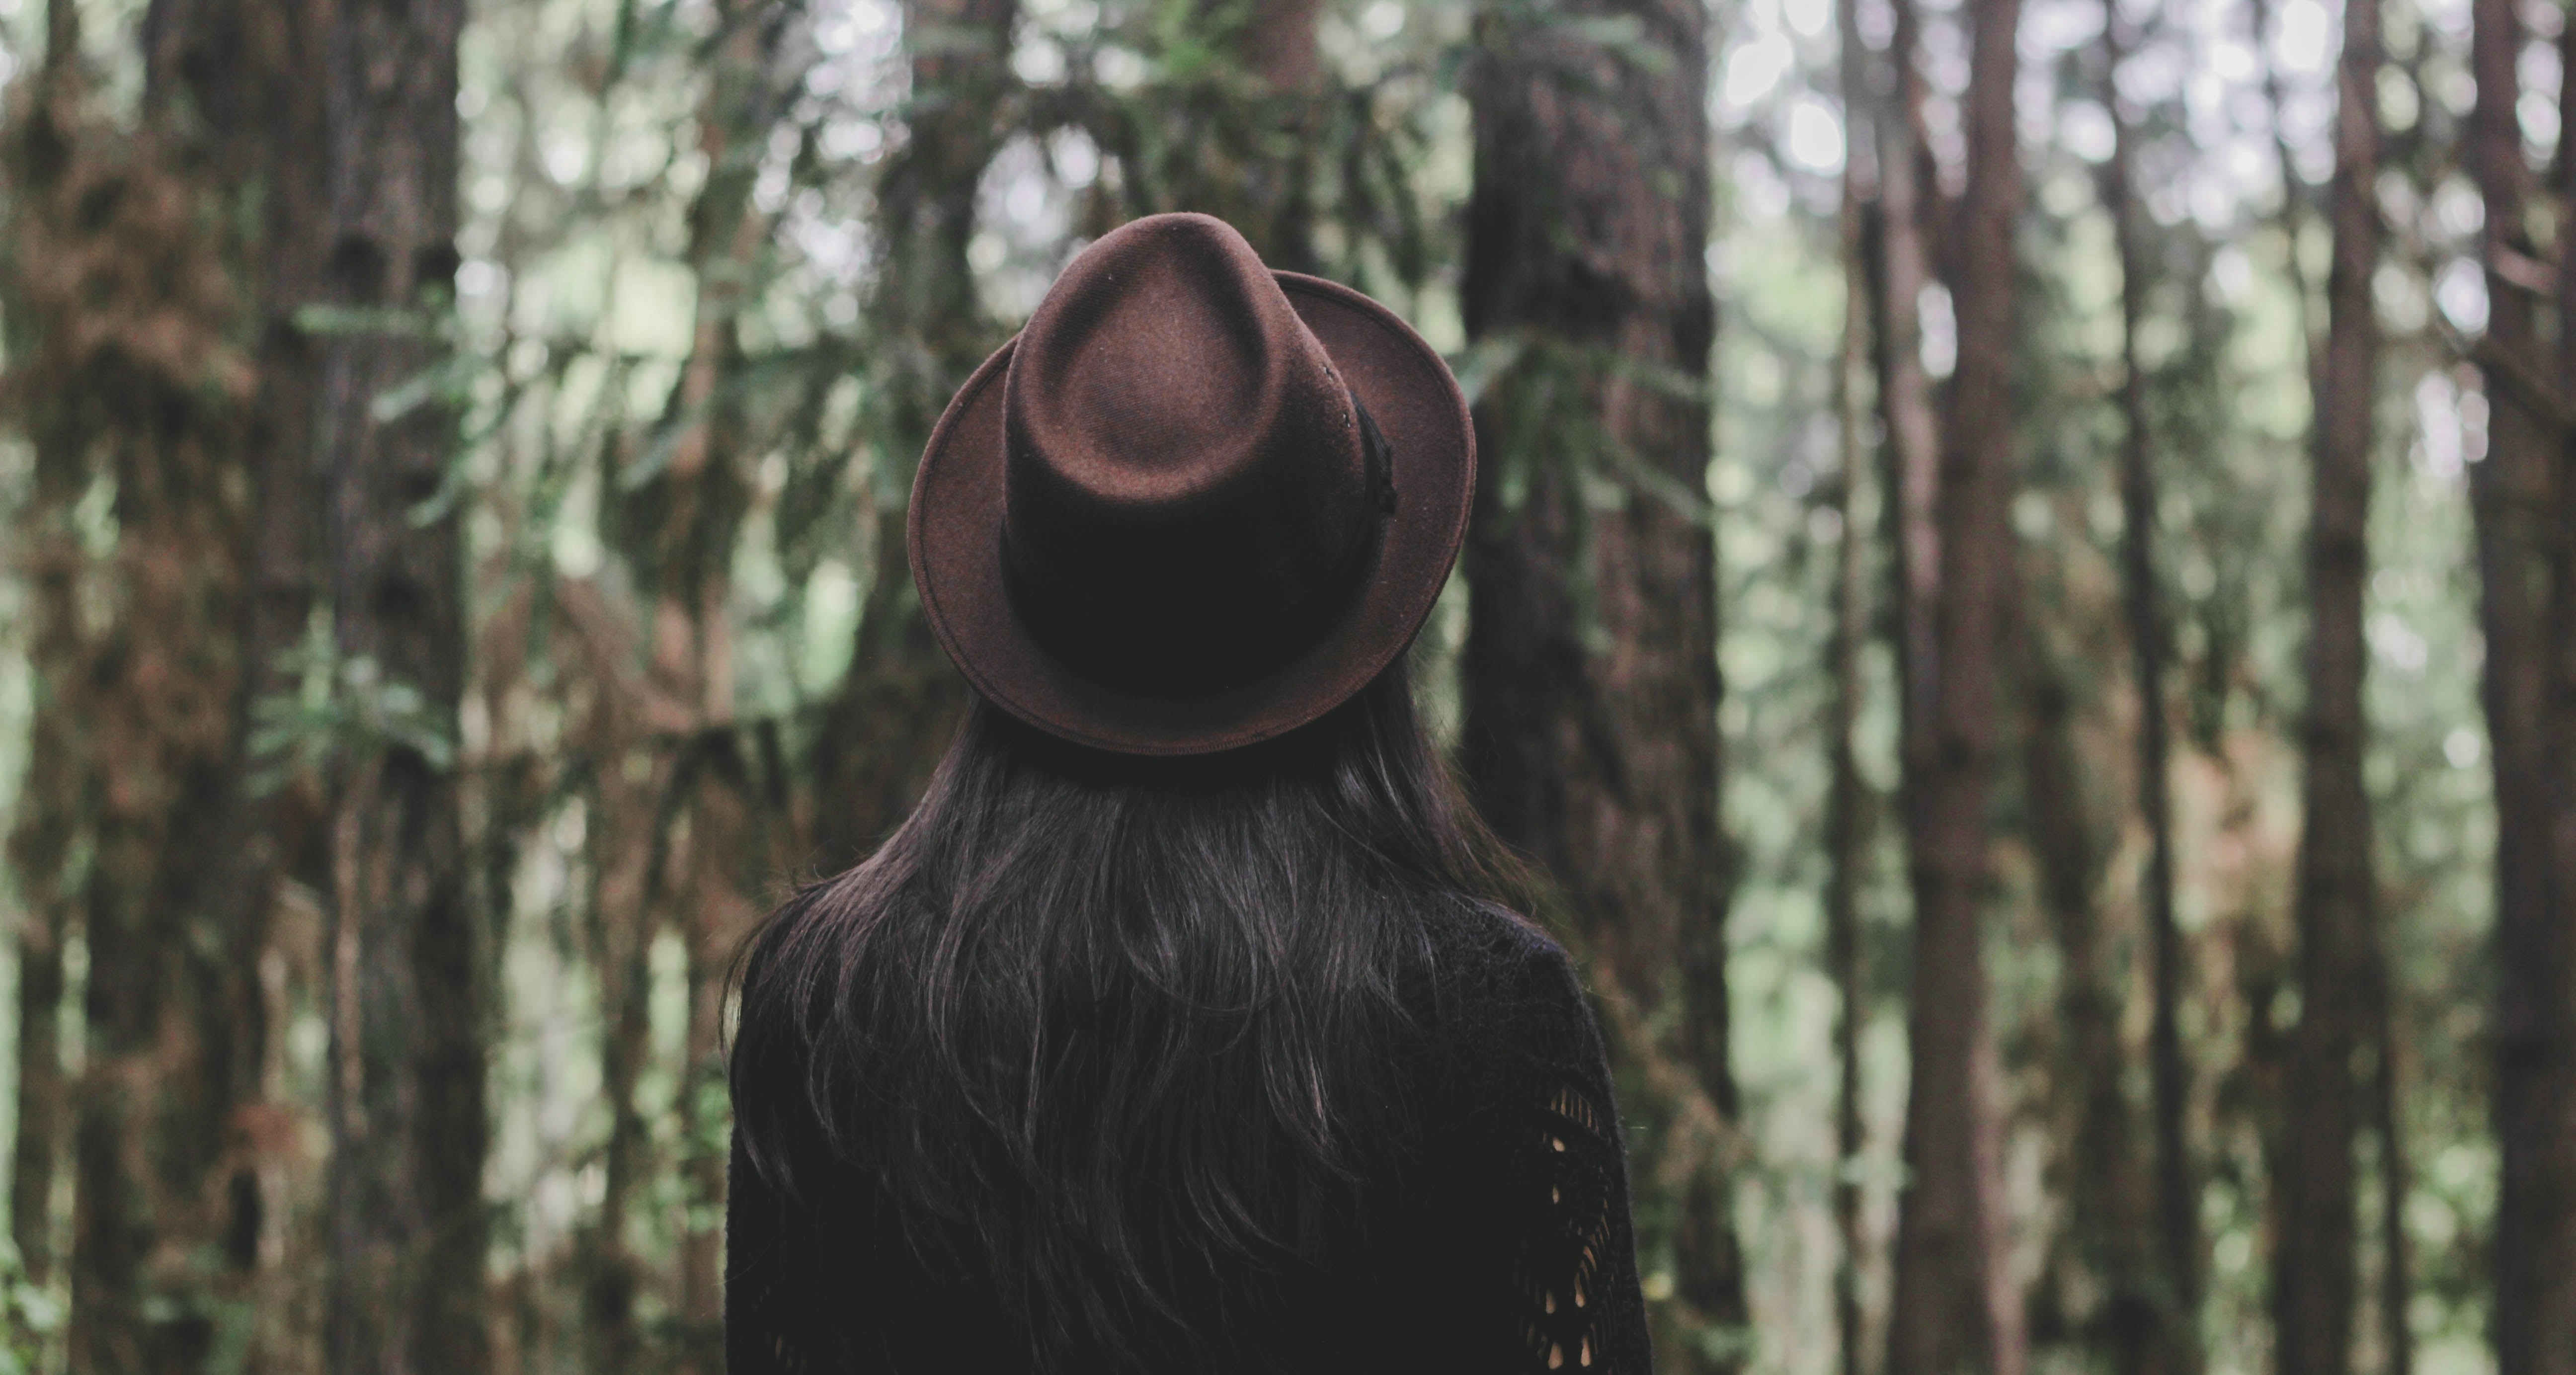 A woman in a hat looking at trees in a forest in Cianorte